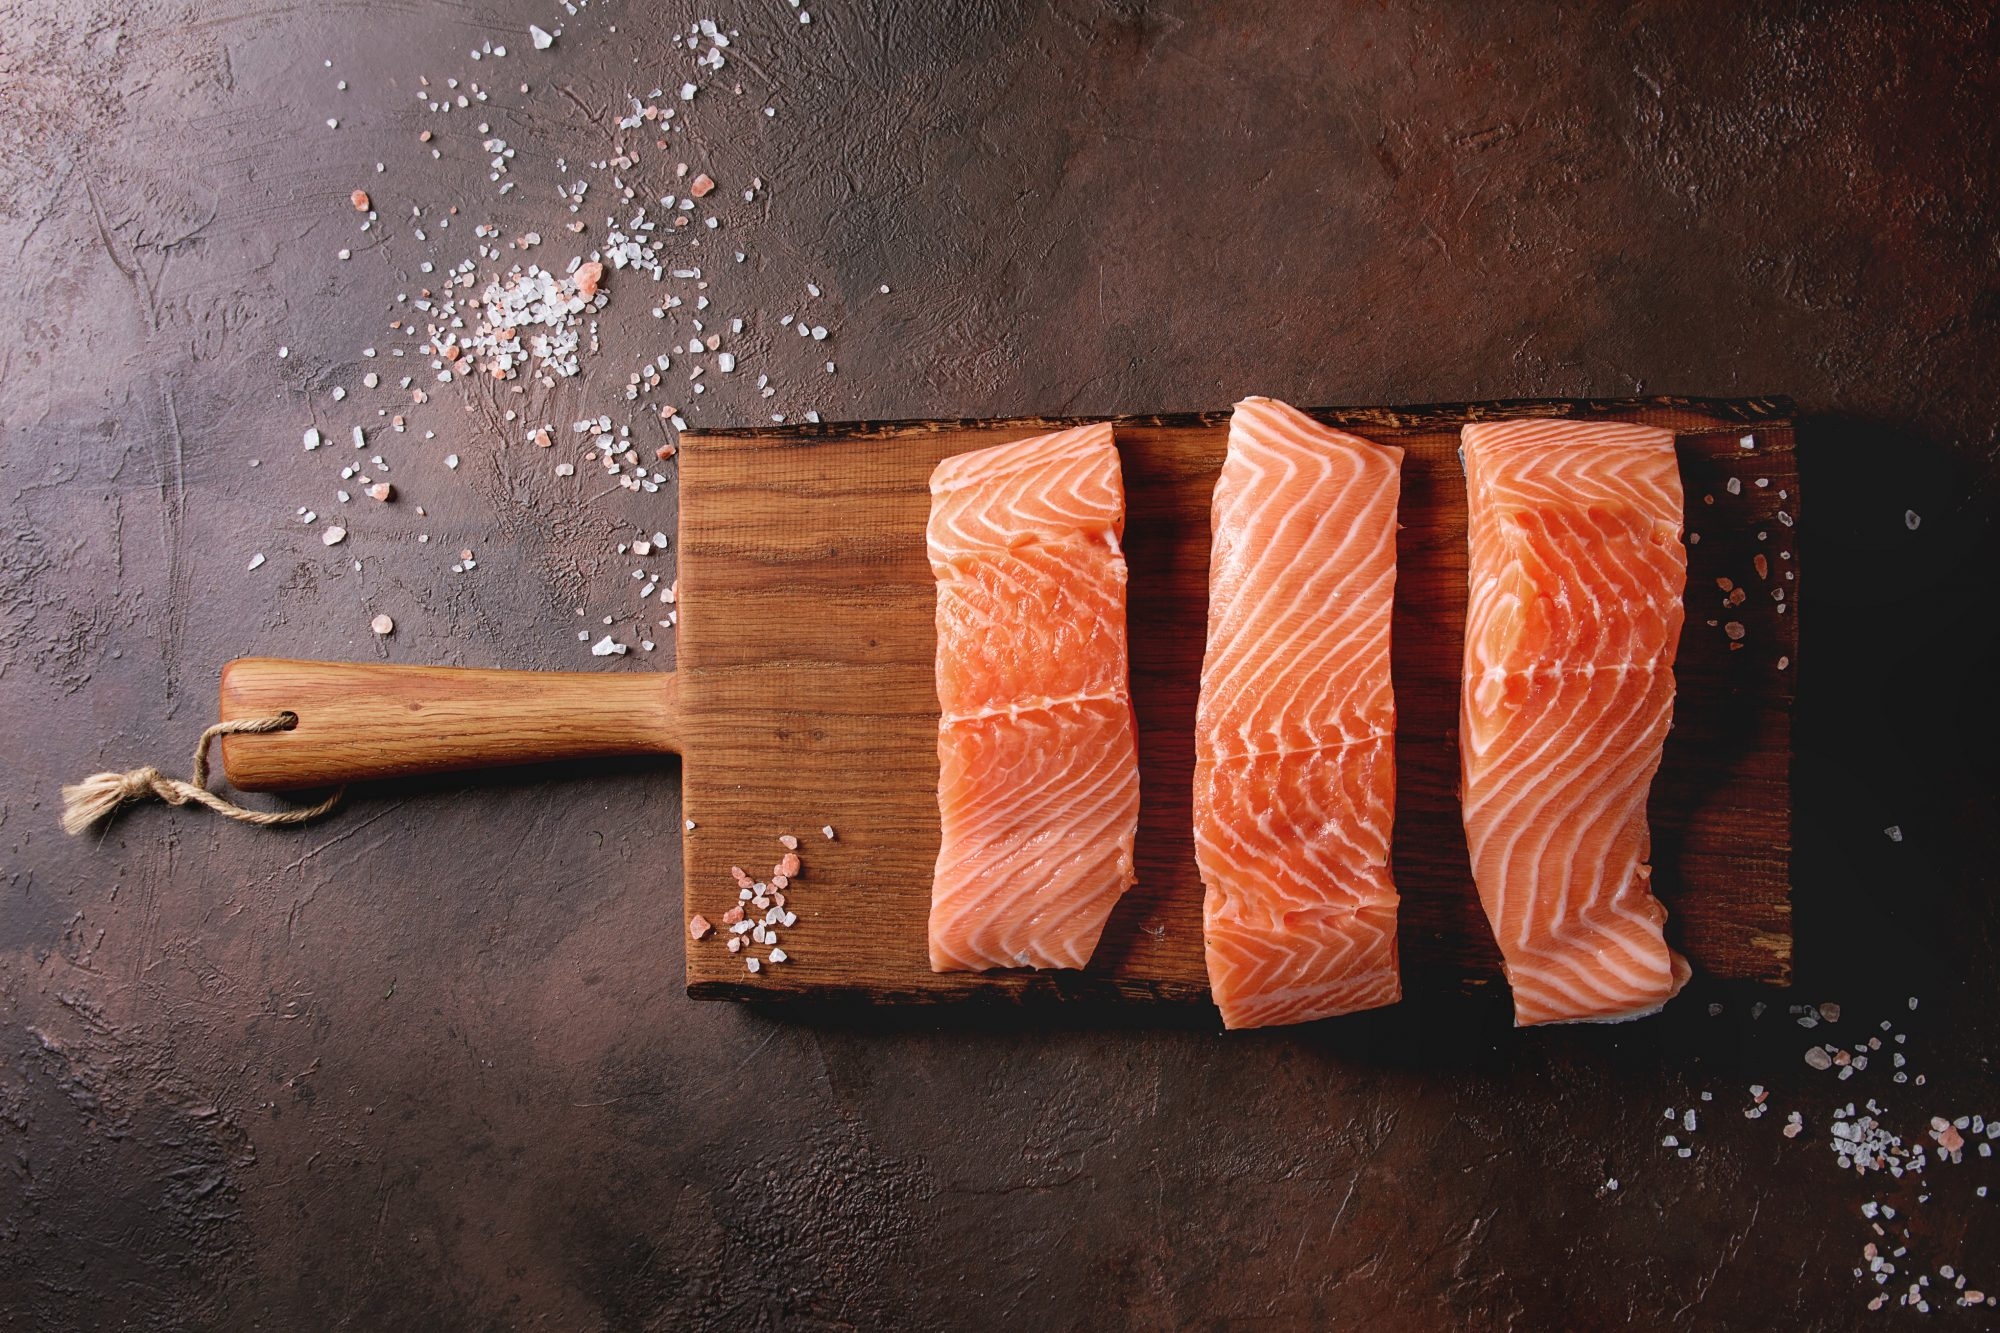 5 Common Mistakes People Make with Fish – and How to Avoid Them